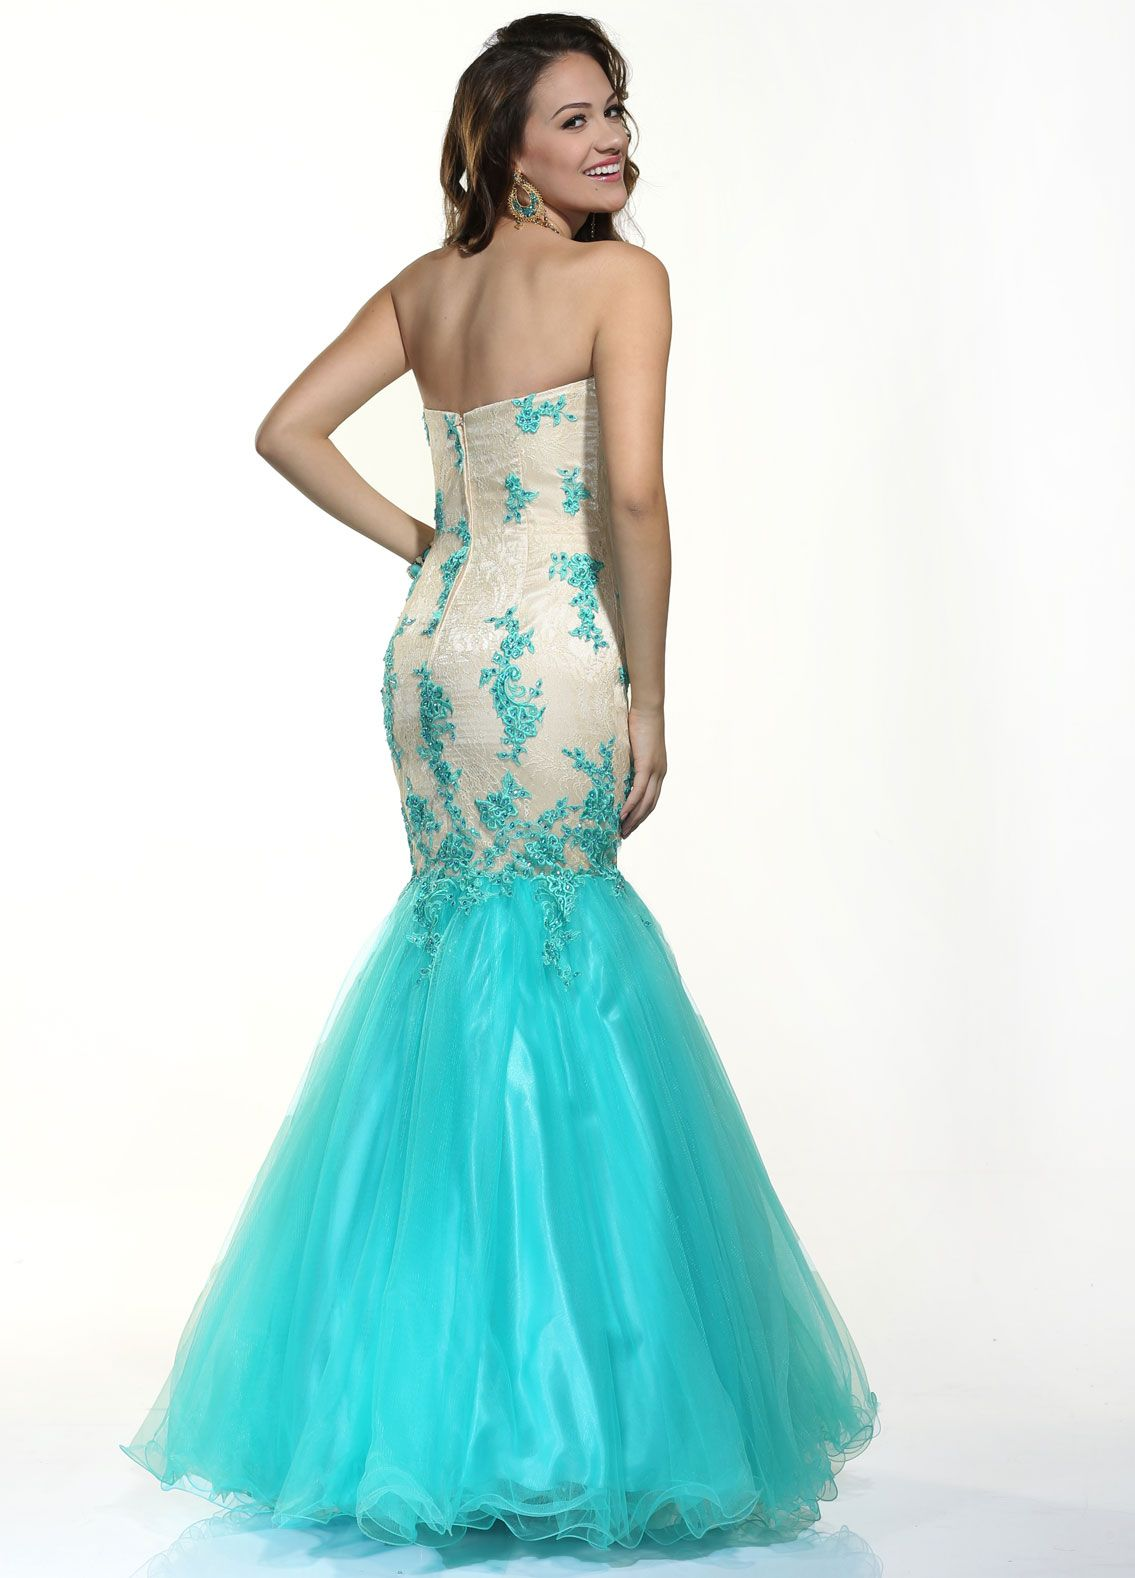 Unusual Disney Prom Gowns Photos - Wedding and flowers ispiration ...